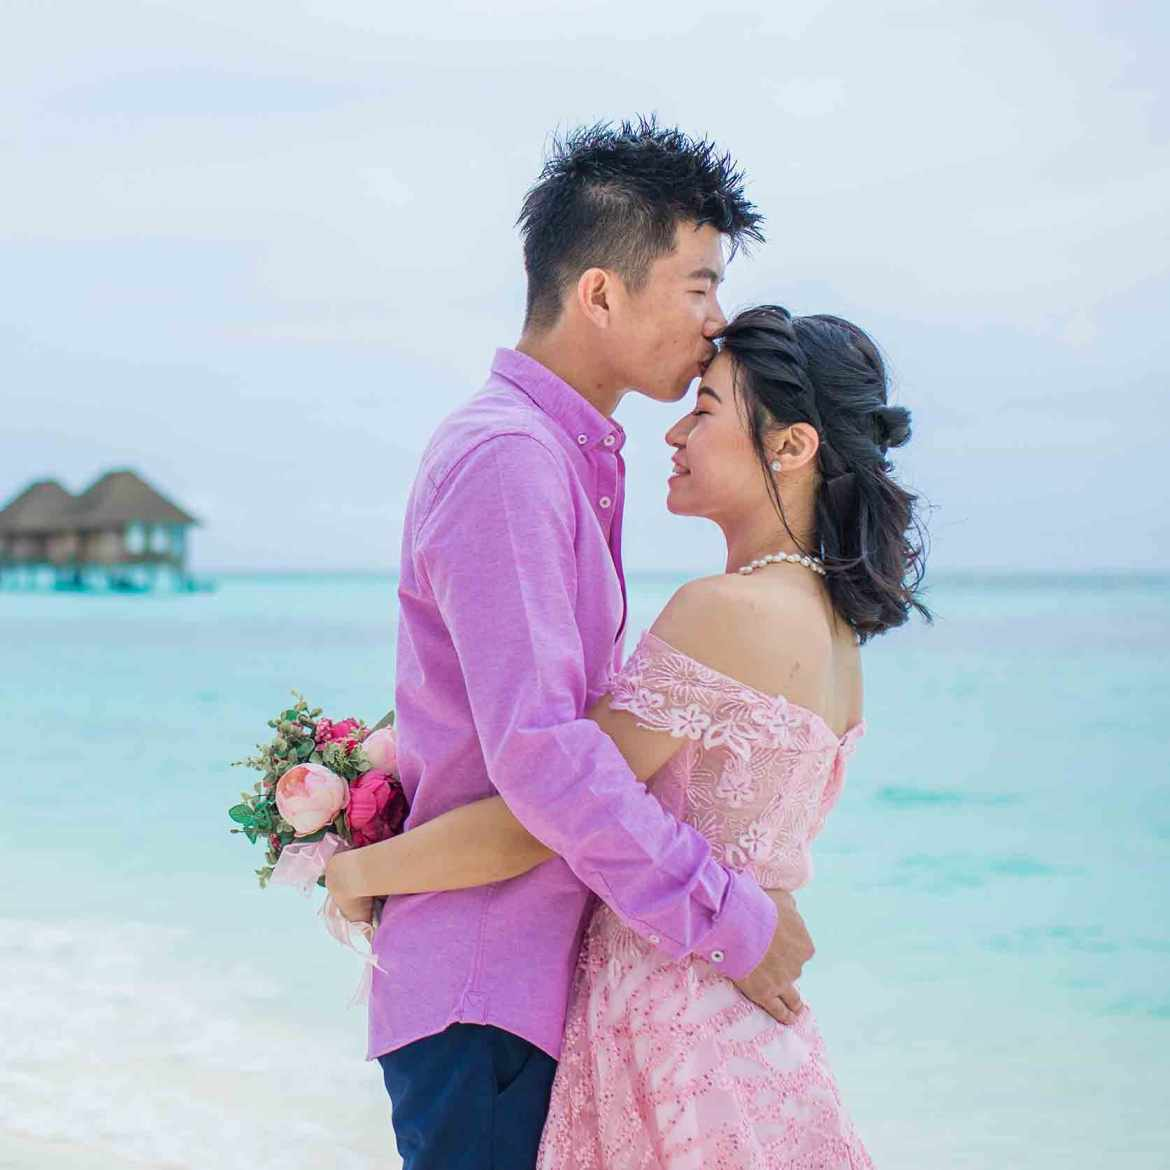 phaisalphotos as our pre-wedding photographer